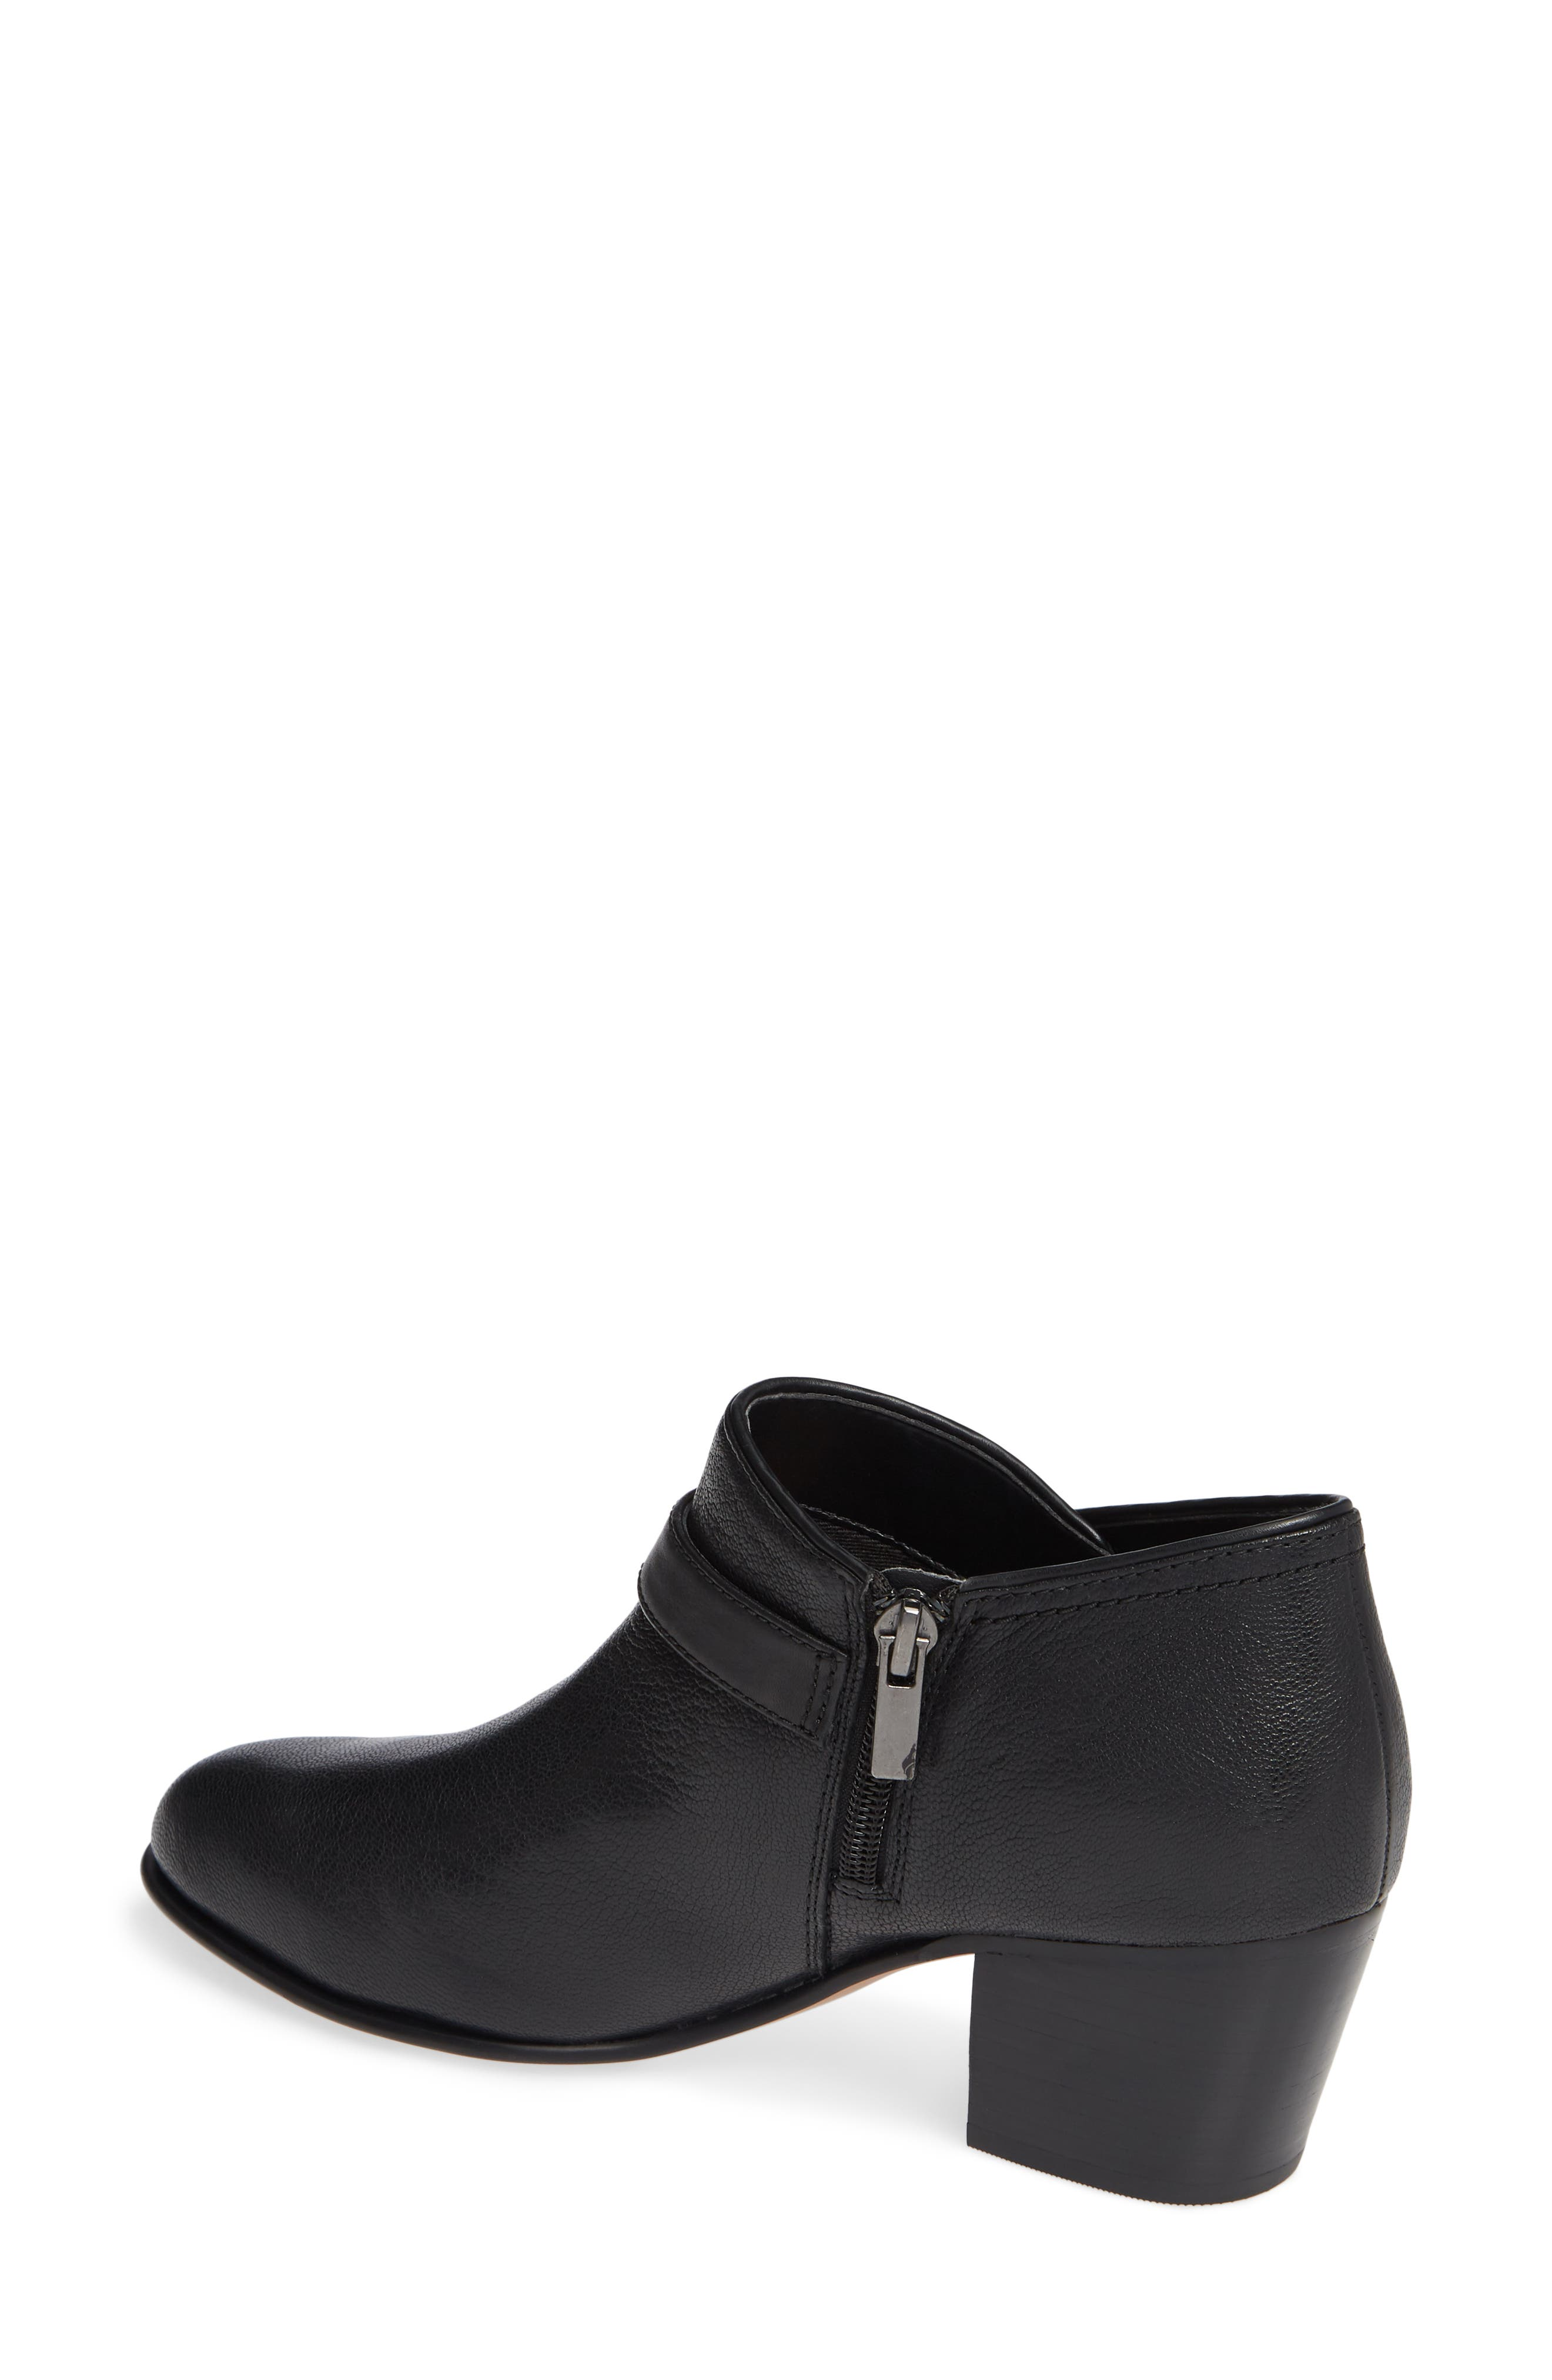 CLARKS<SUP>®</SUP>, Maypearl Milla Bootie, Alternate thumbnail 2, color, BLACK TUMBLED LEATHER